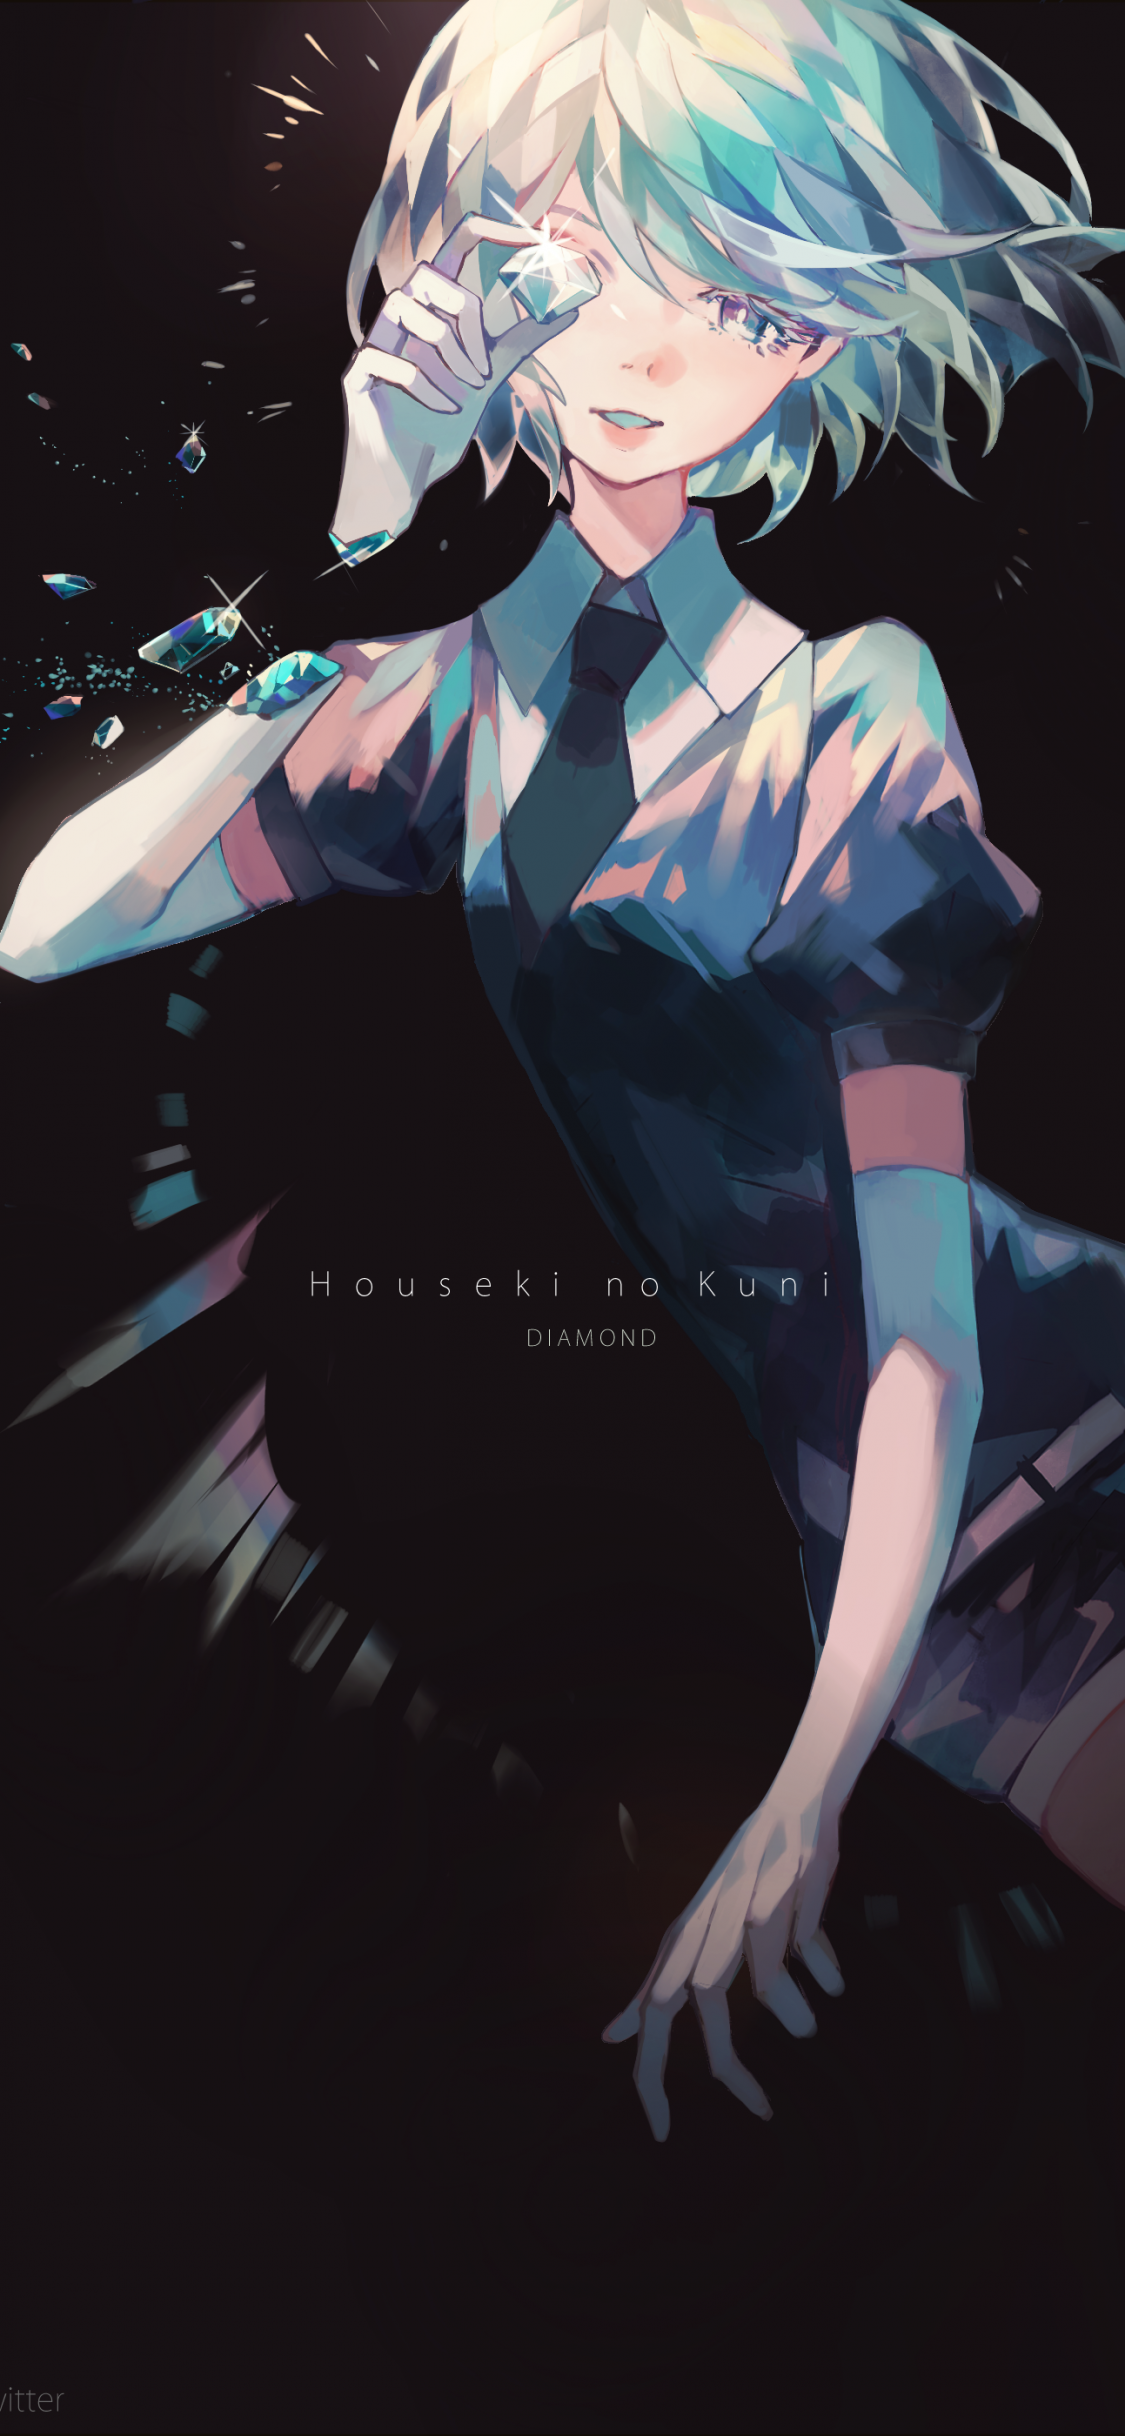 Houseki No Kuni Diamond Shattered Houseki No Kuni Diamond 2003113 Hd Wallpaper Backgrounds Download